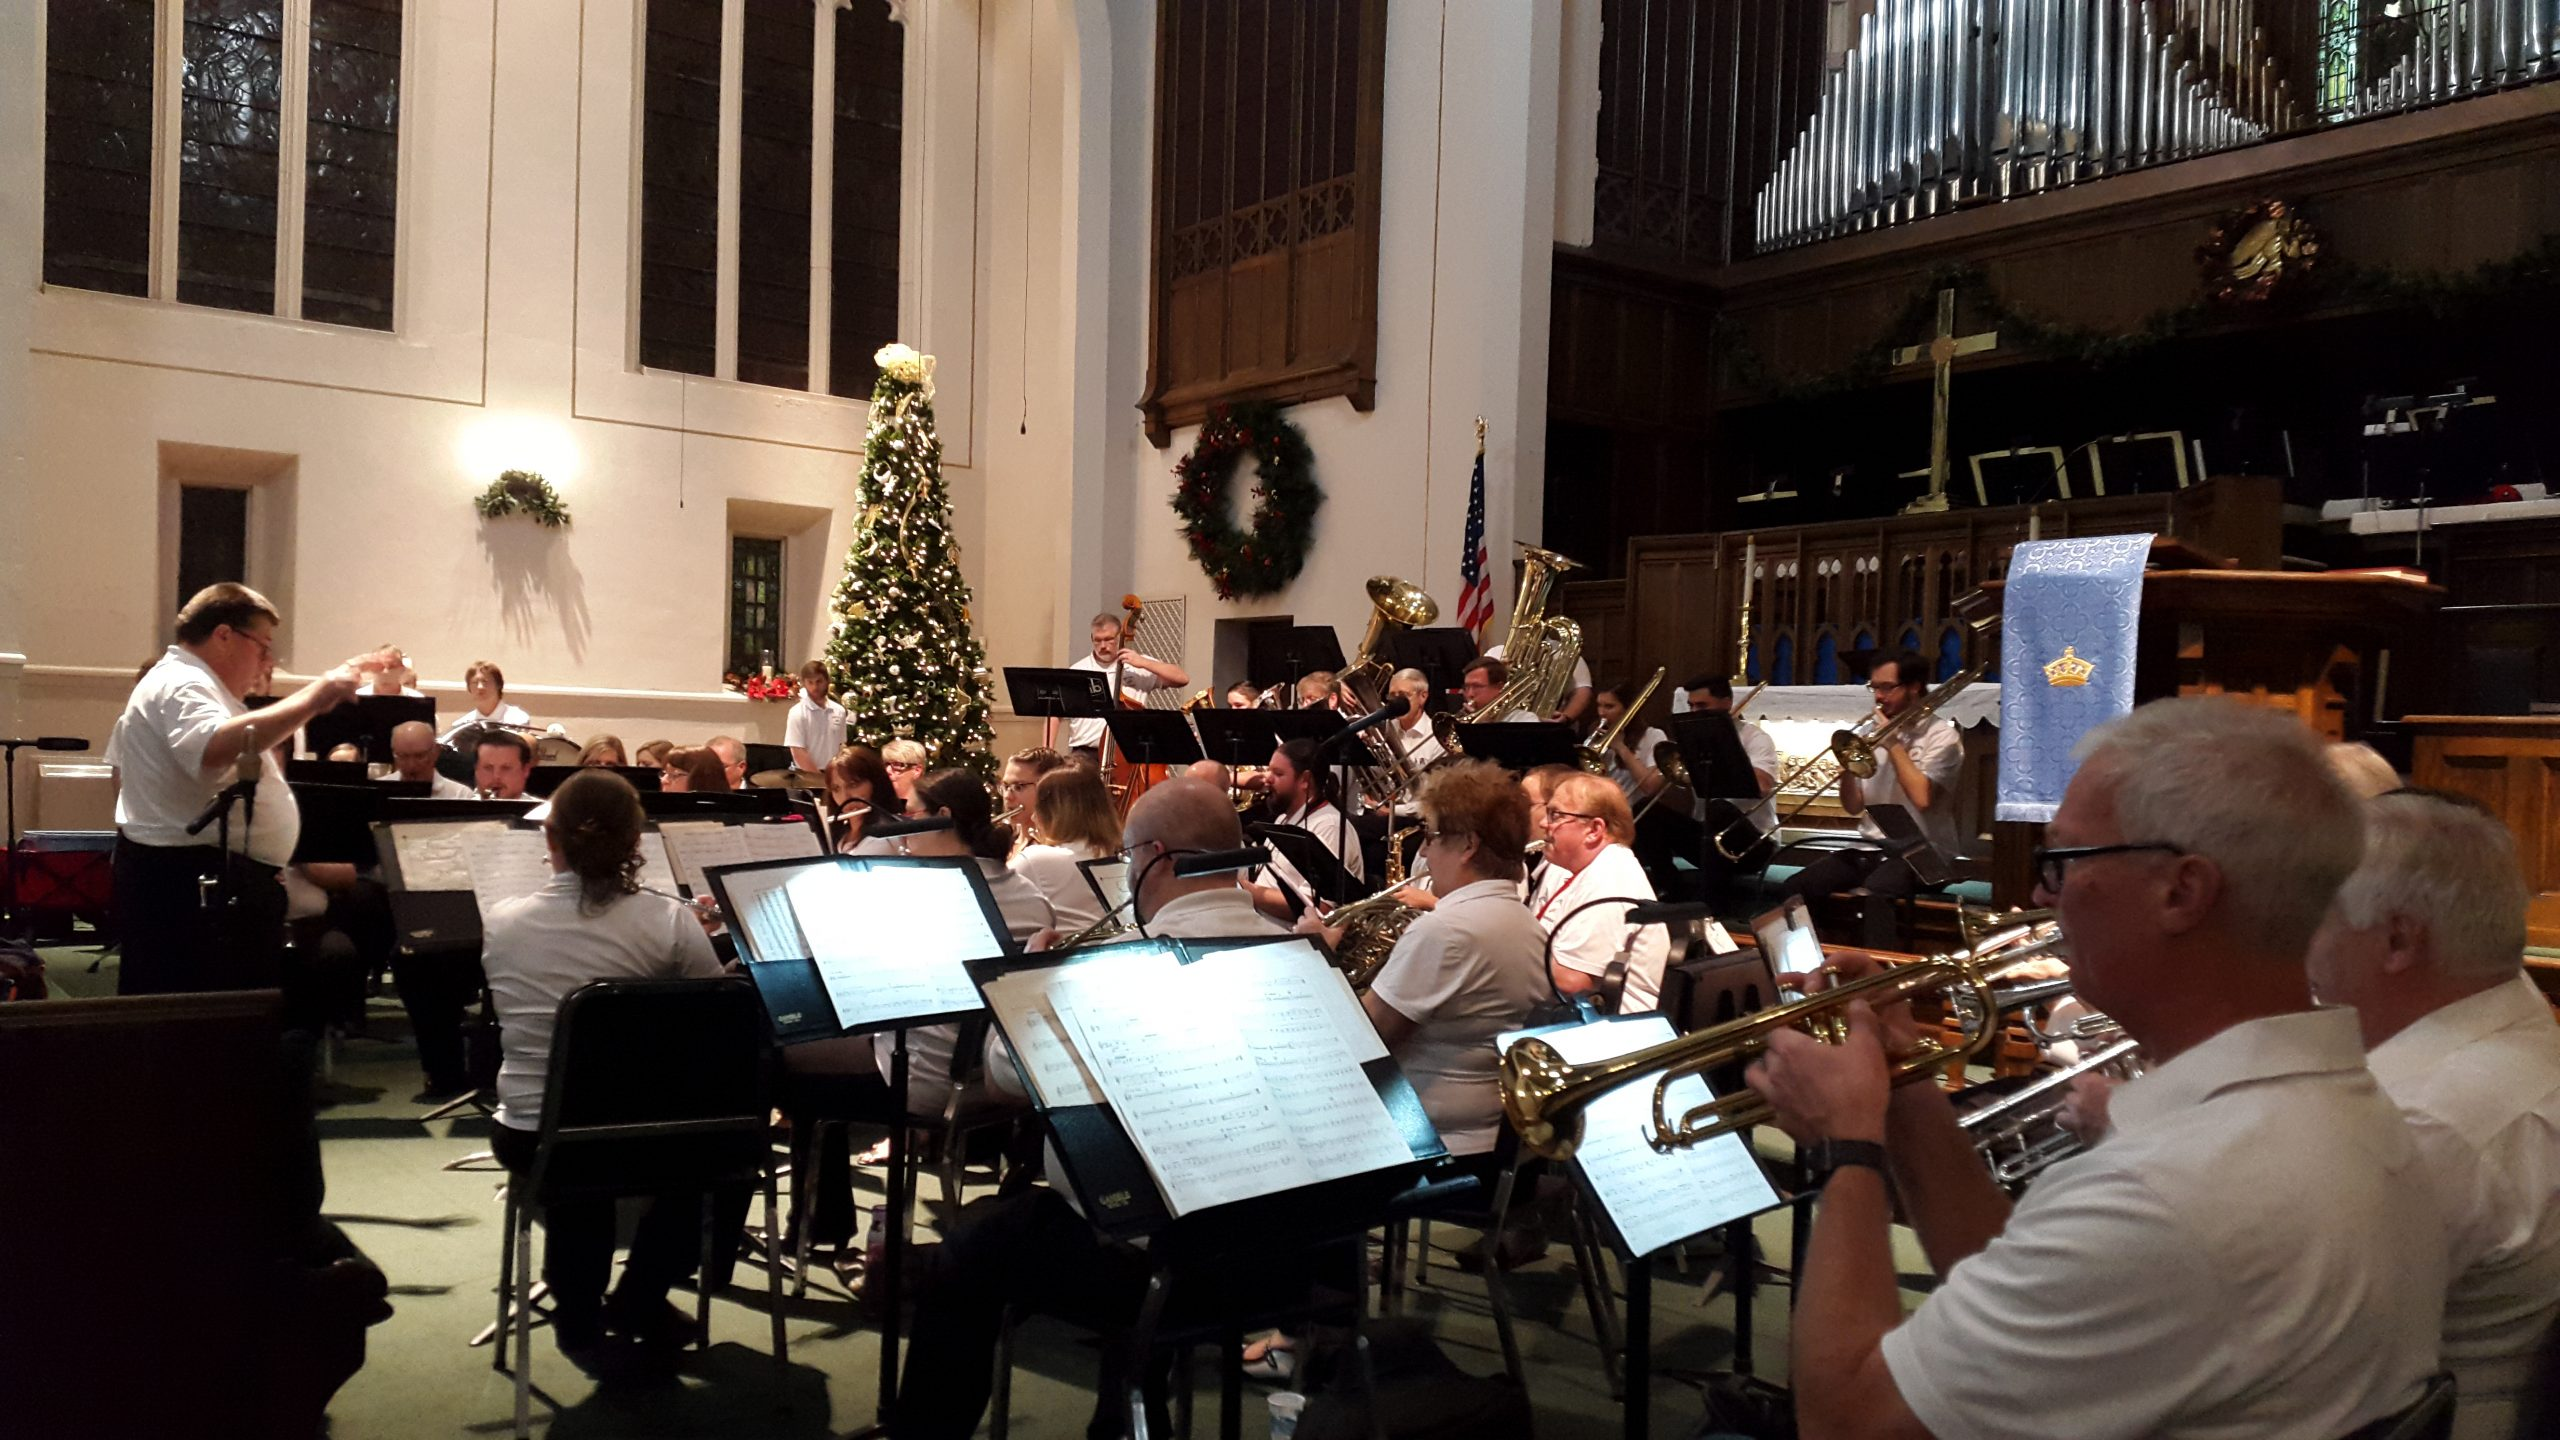 12 Days of Christmas Concerts